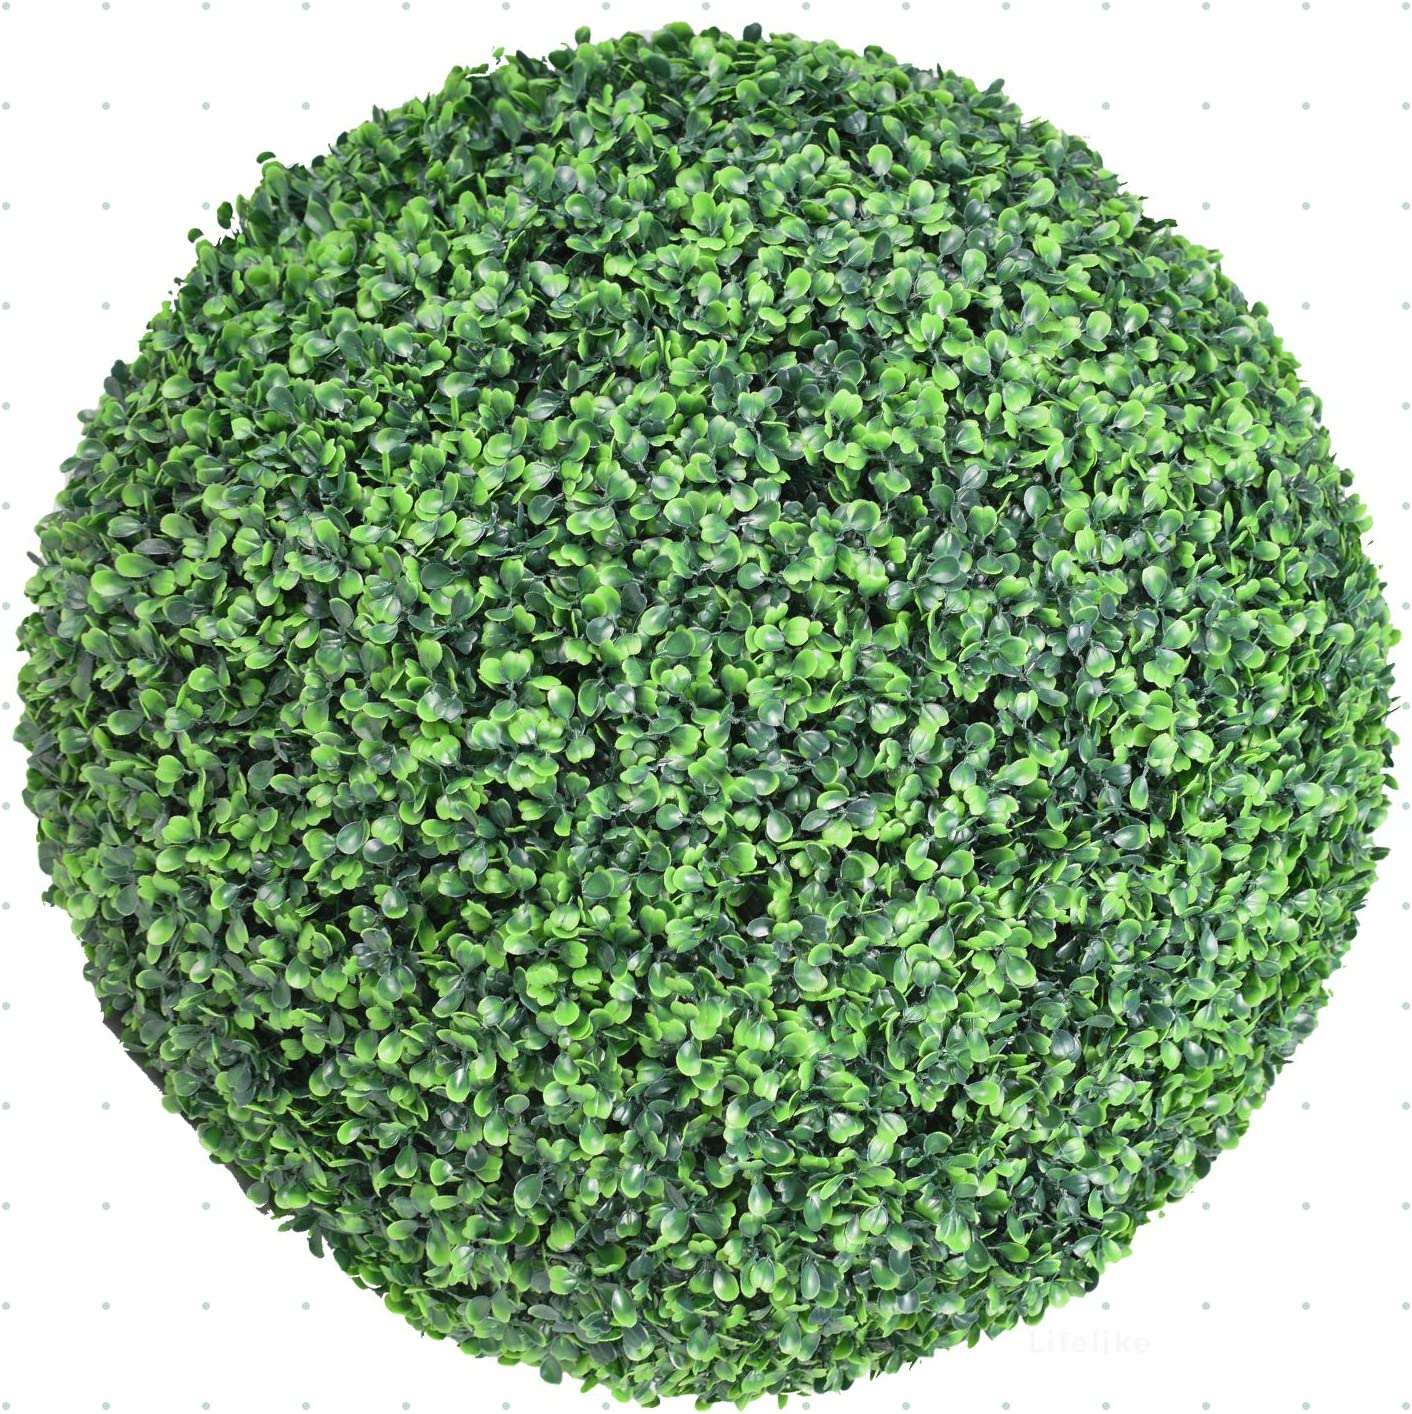 Hieasy 1 Special price for a limited time Pc 22 Inch High-Density Ball Layer 4 Boxwood Reali Leaf Tucson Mall